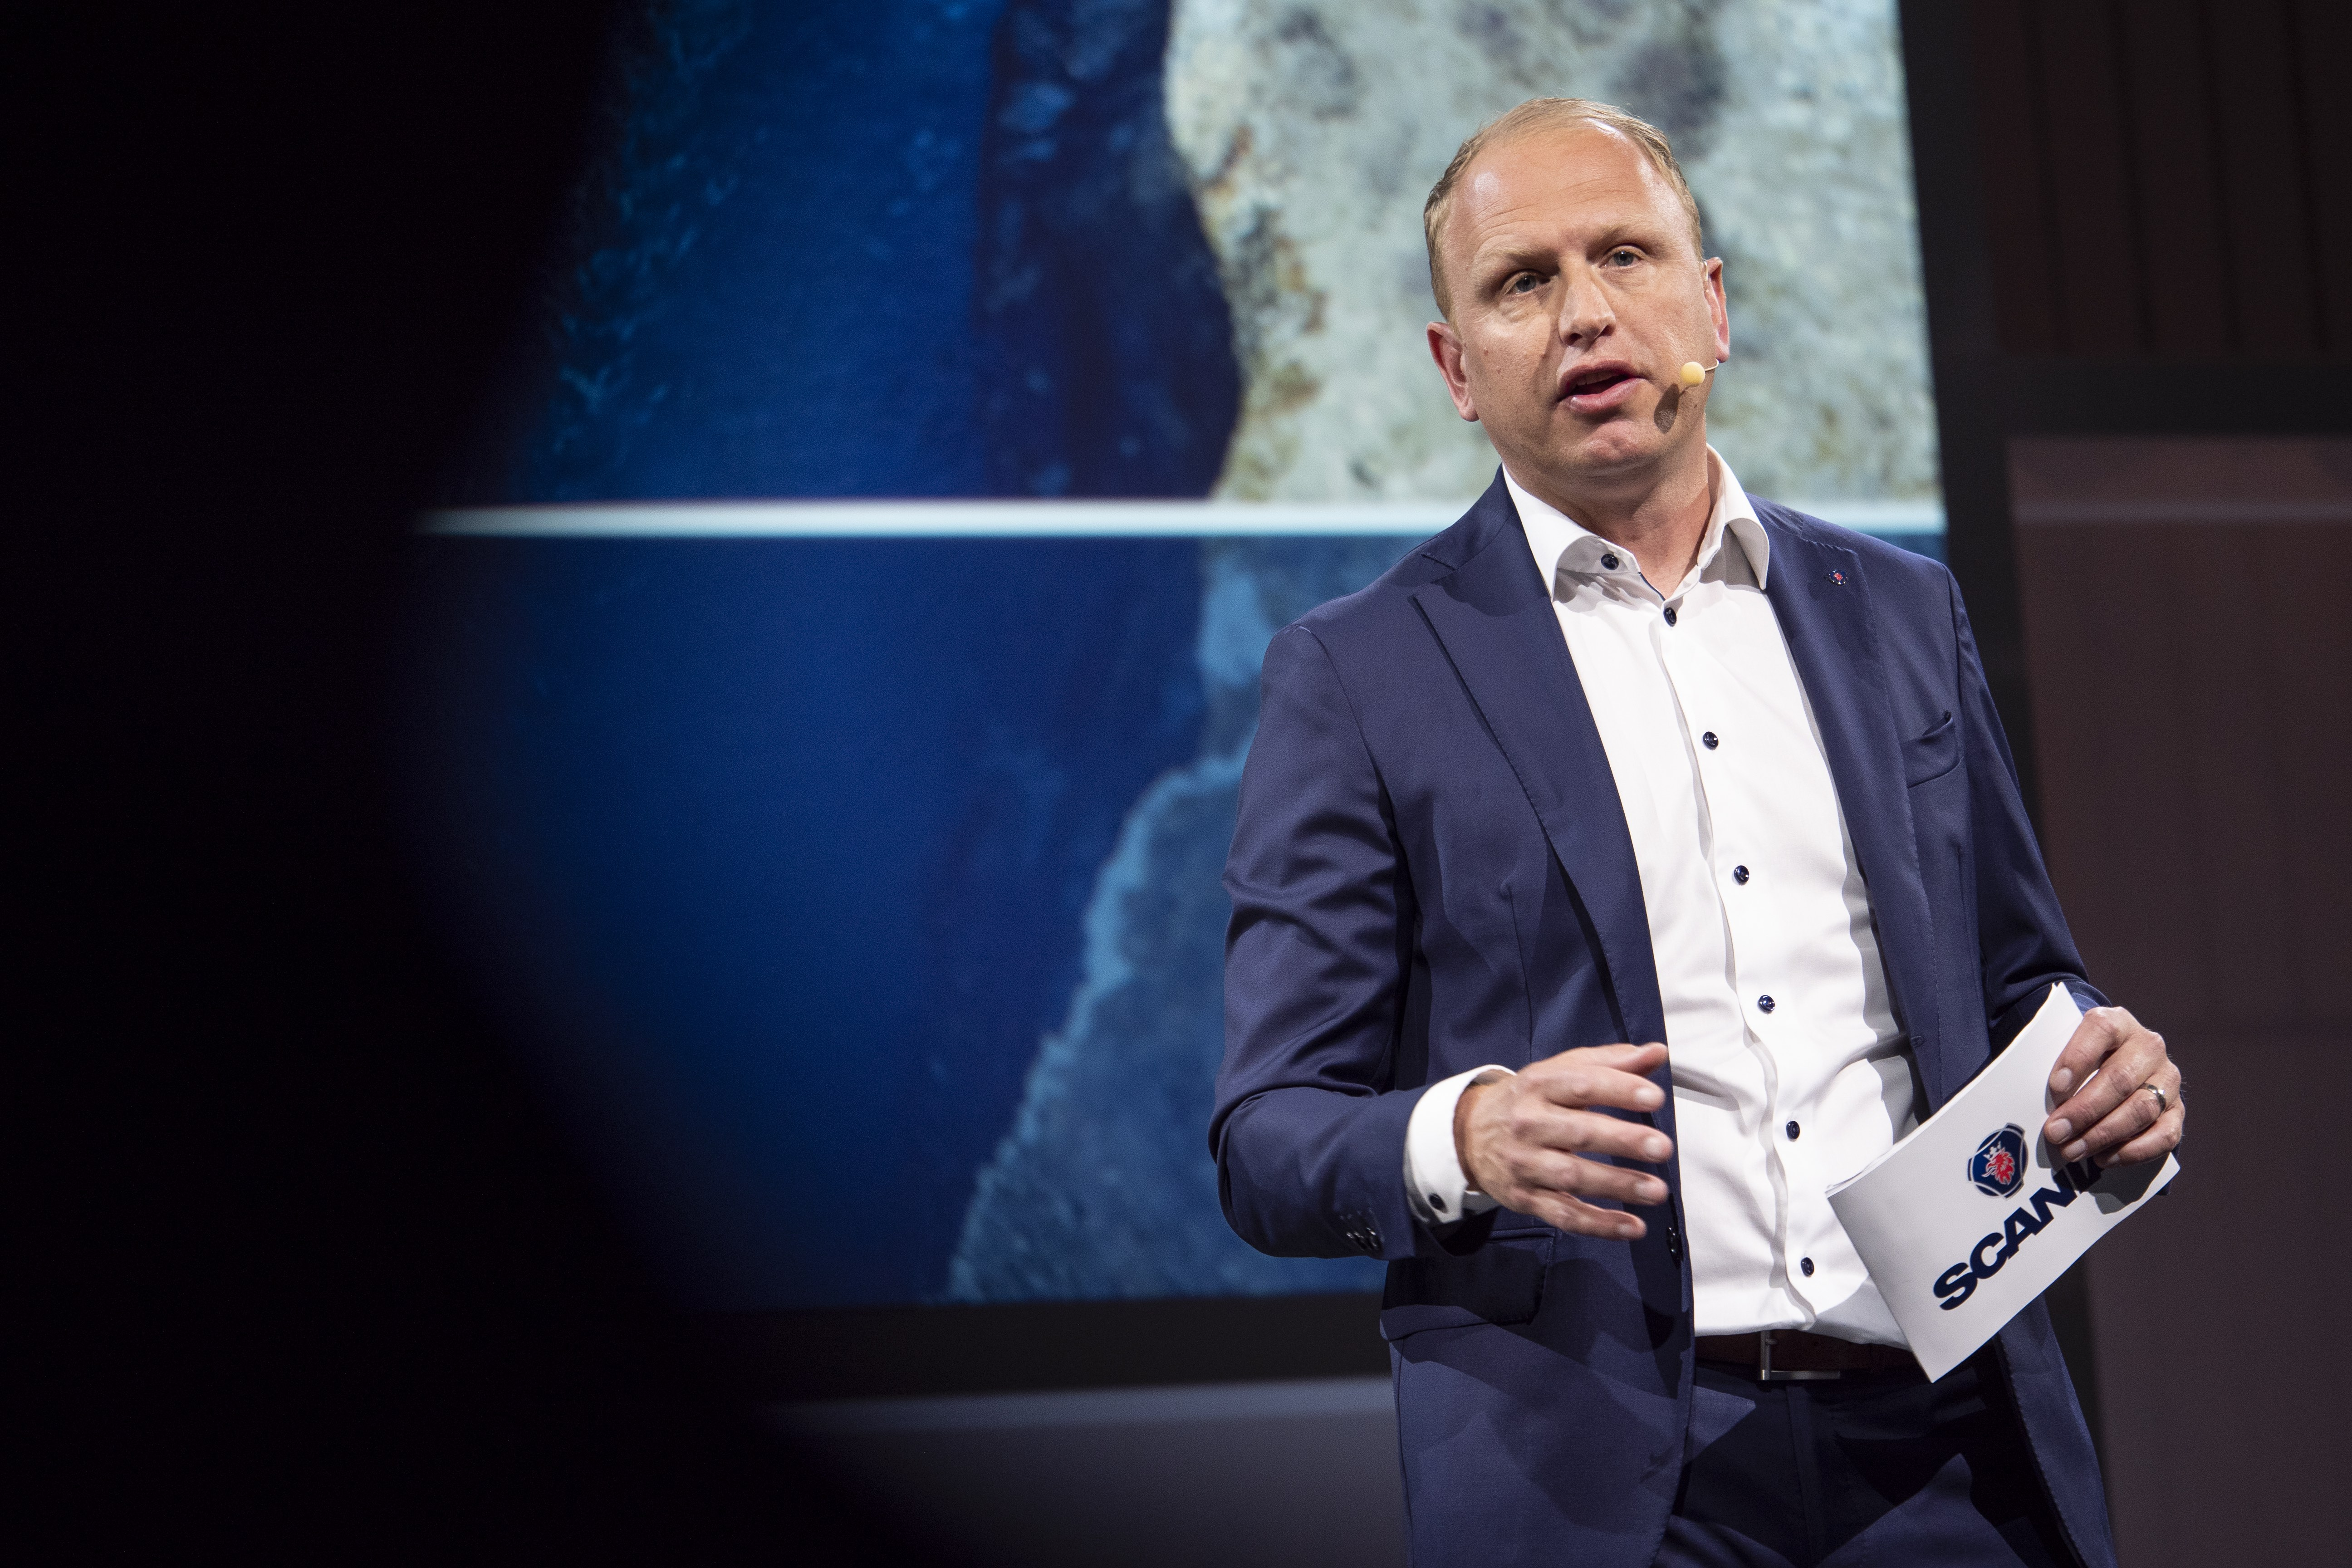 Scania CEO Henrik Henriksson promotes pathways to a fossil fuel free future[1]